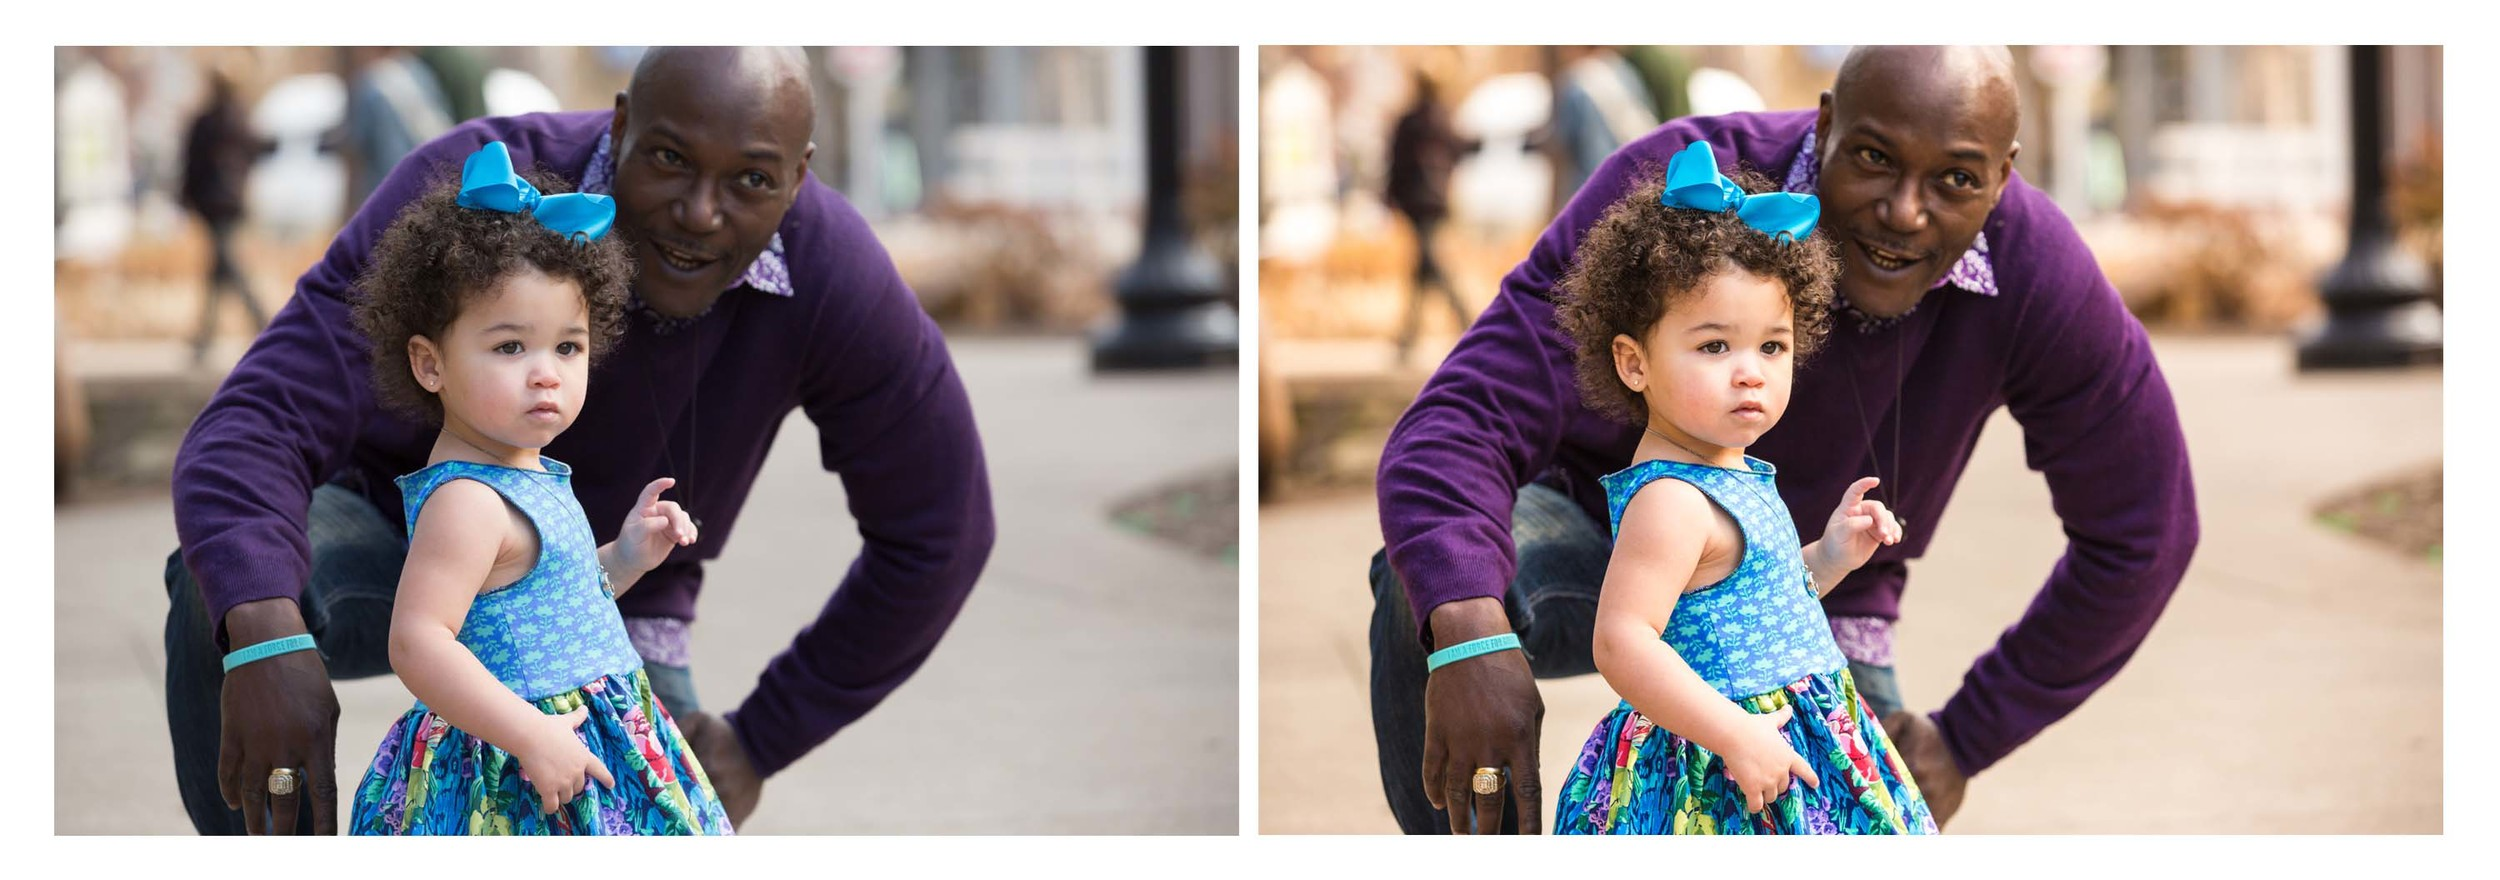 Which would you rather show your family and friends, unedited on the left or edited on the right?